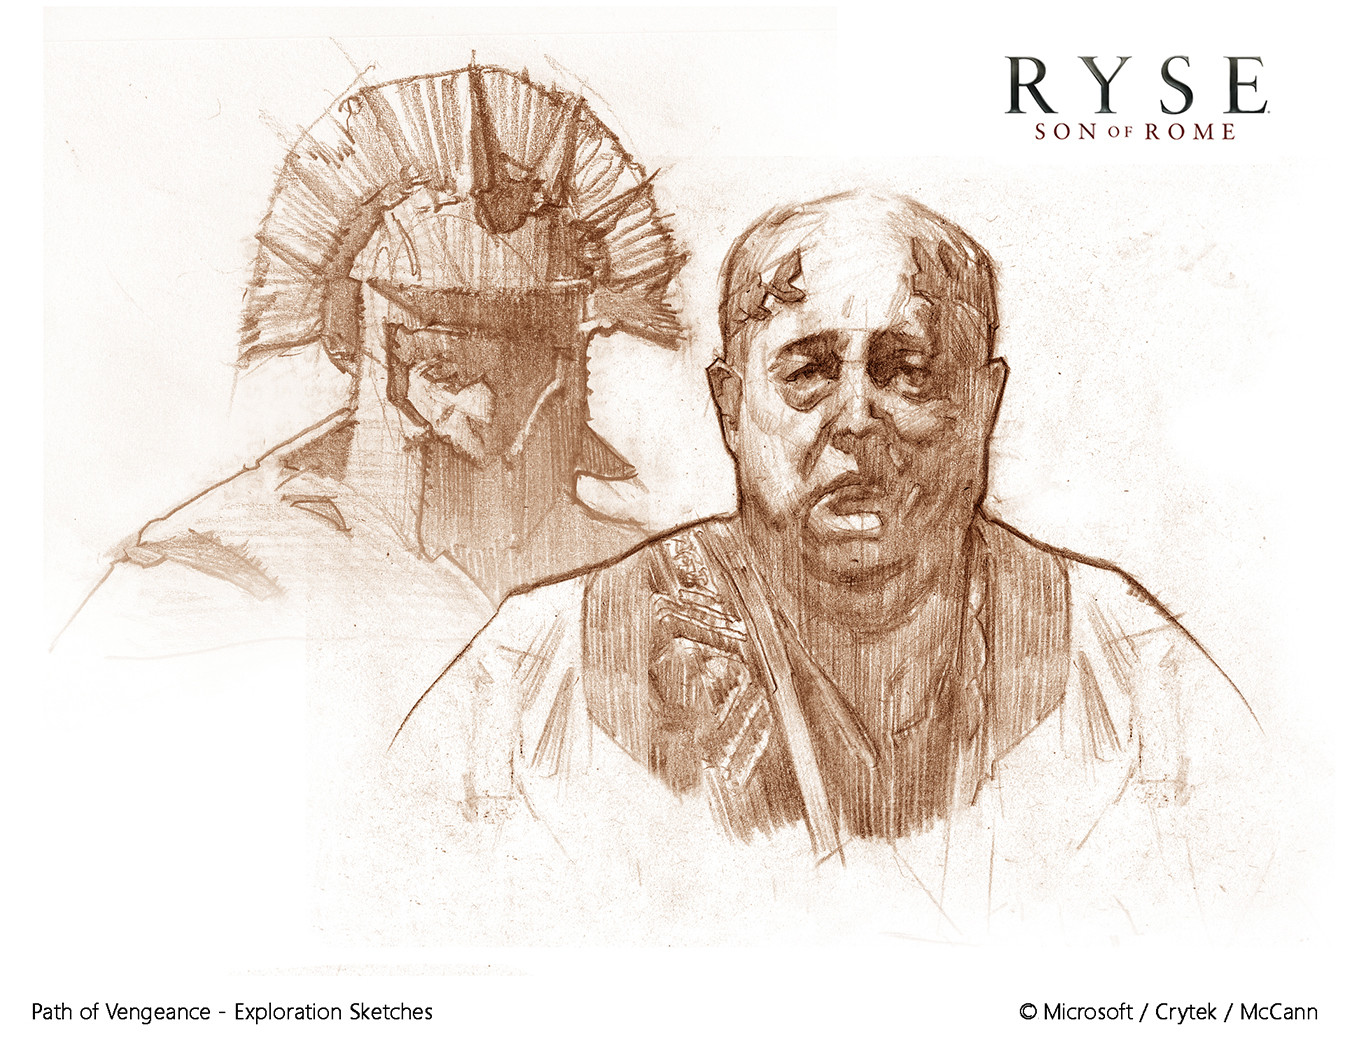 Steve carruthers ryse path of vengeance sketches 1b s